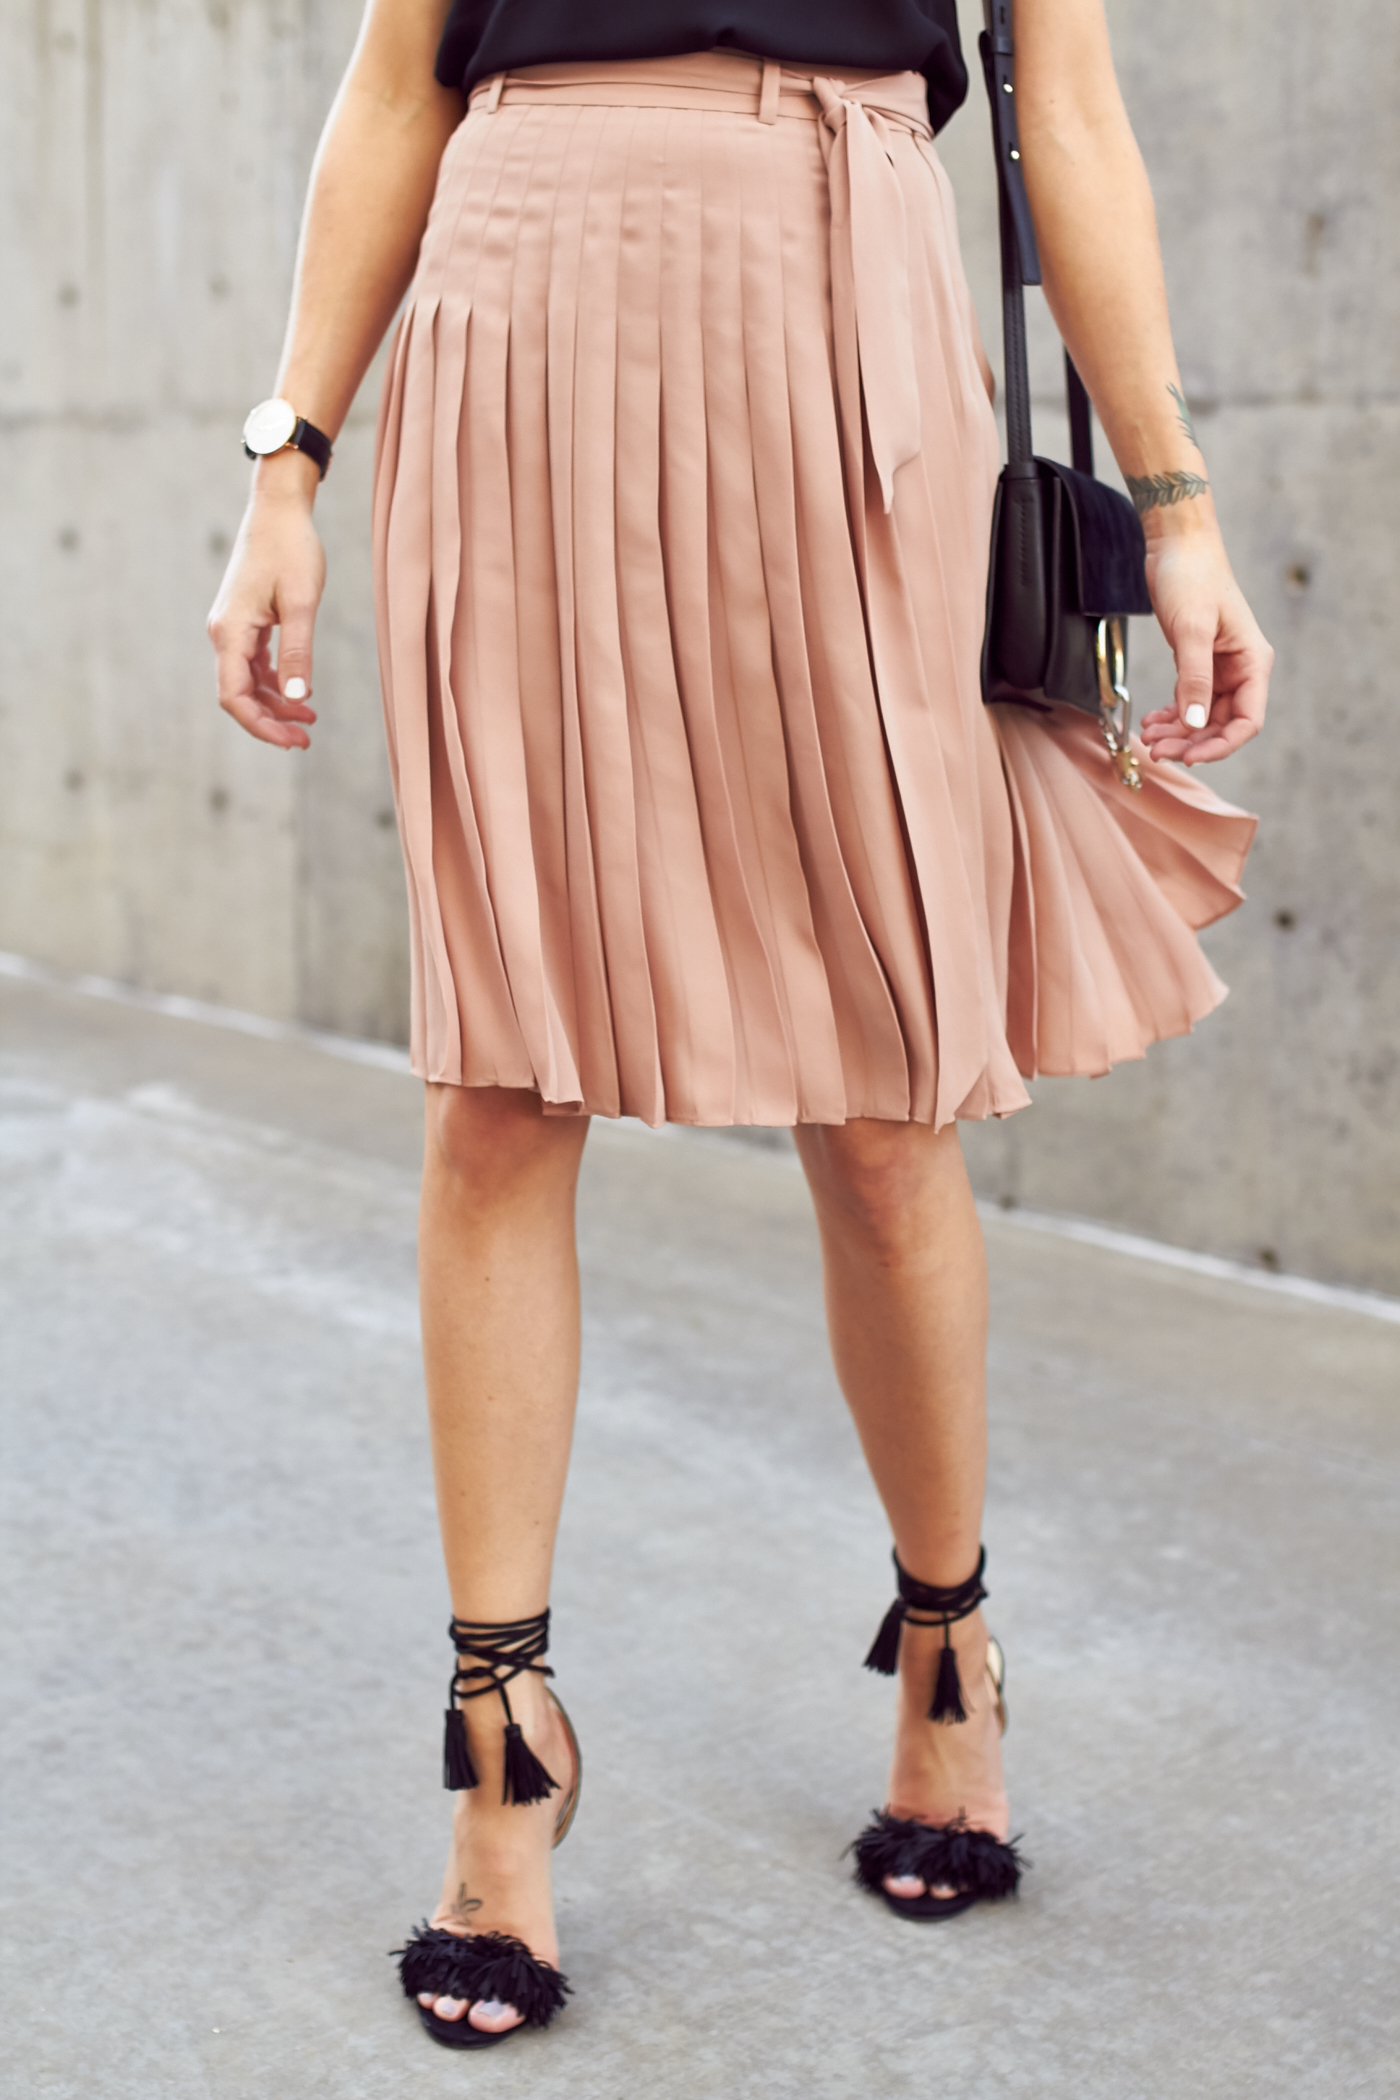 fashion-jackson-black-fringe-wild-thing-heels-ann-taylor-pink-pleated-skirt